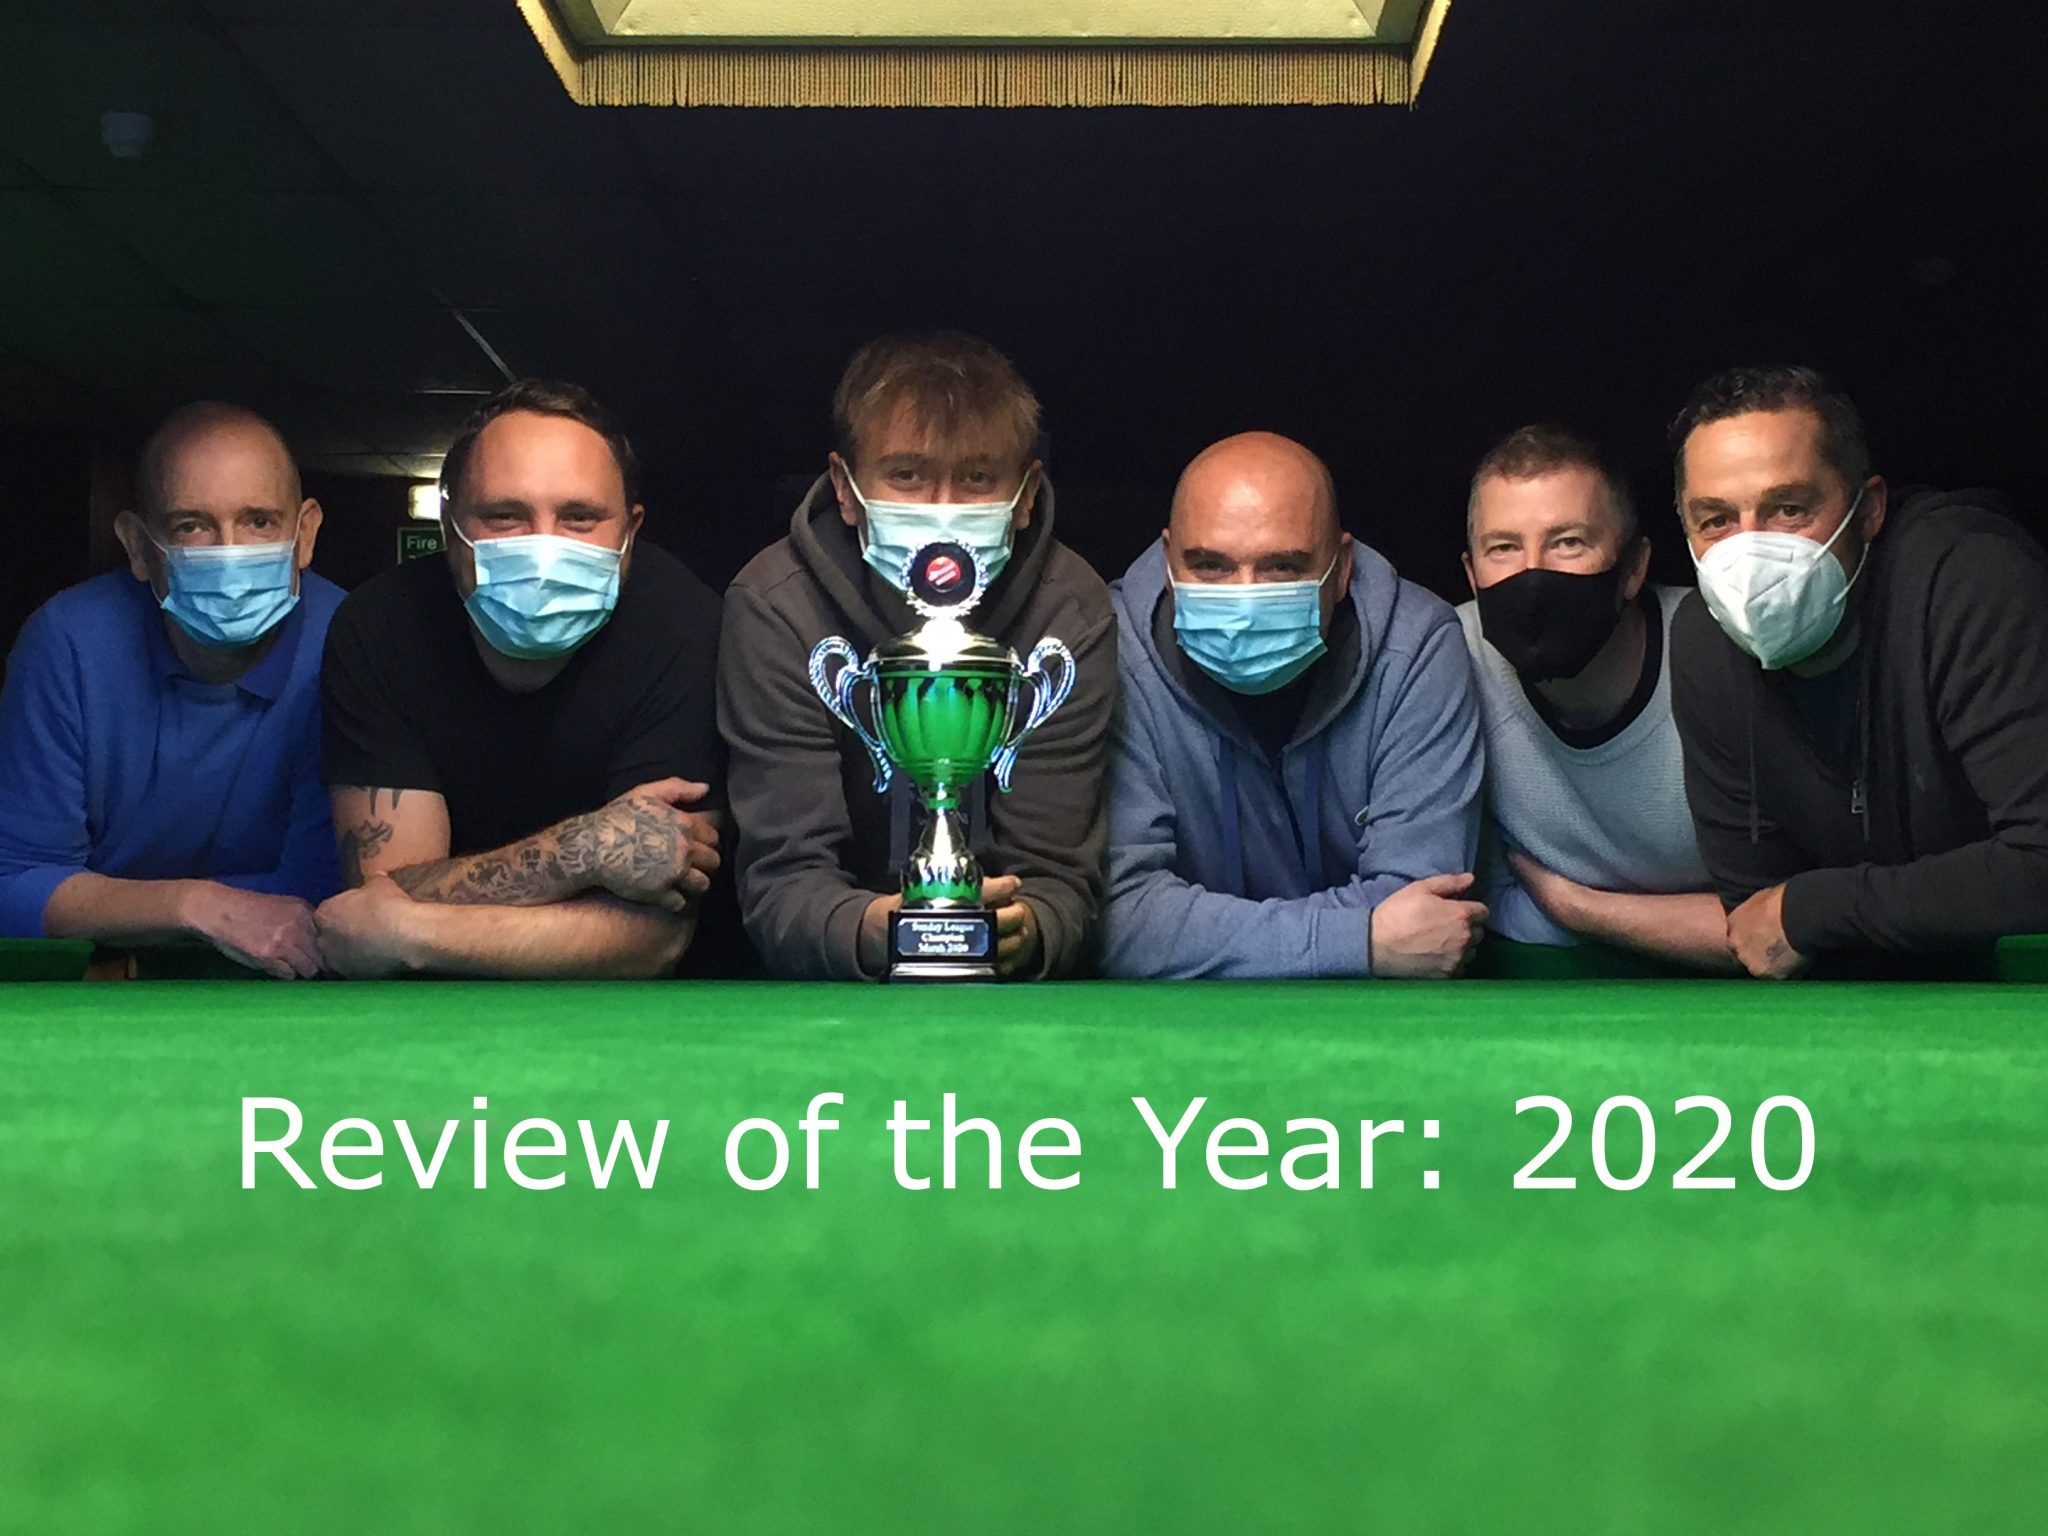 Review of the Year: 2020